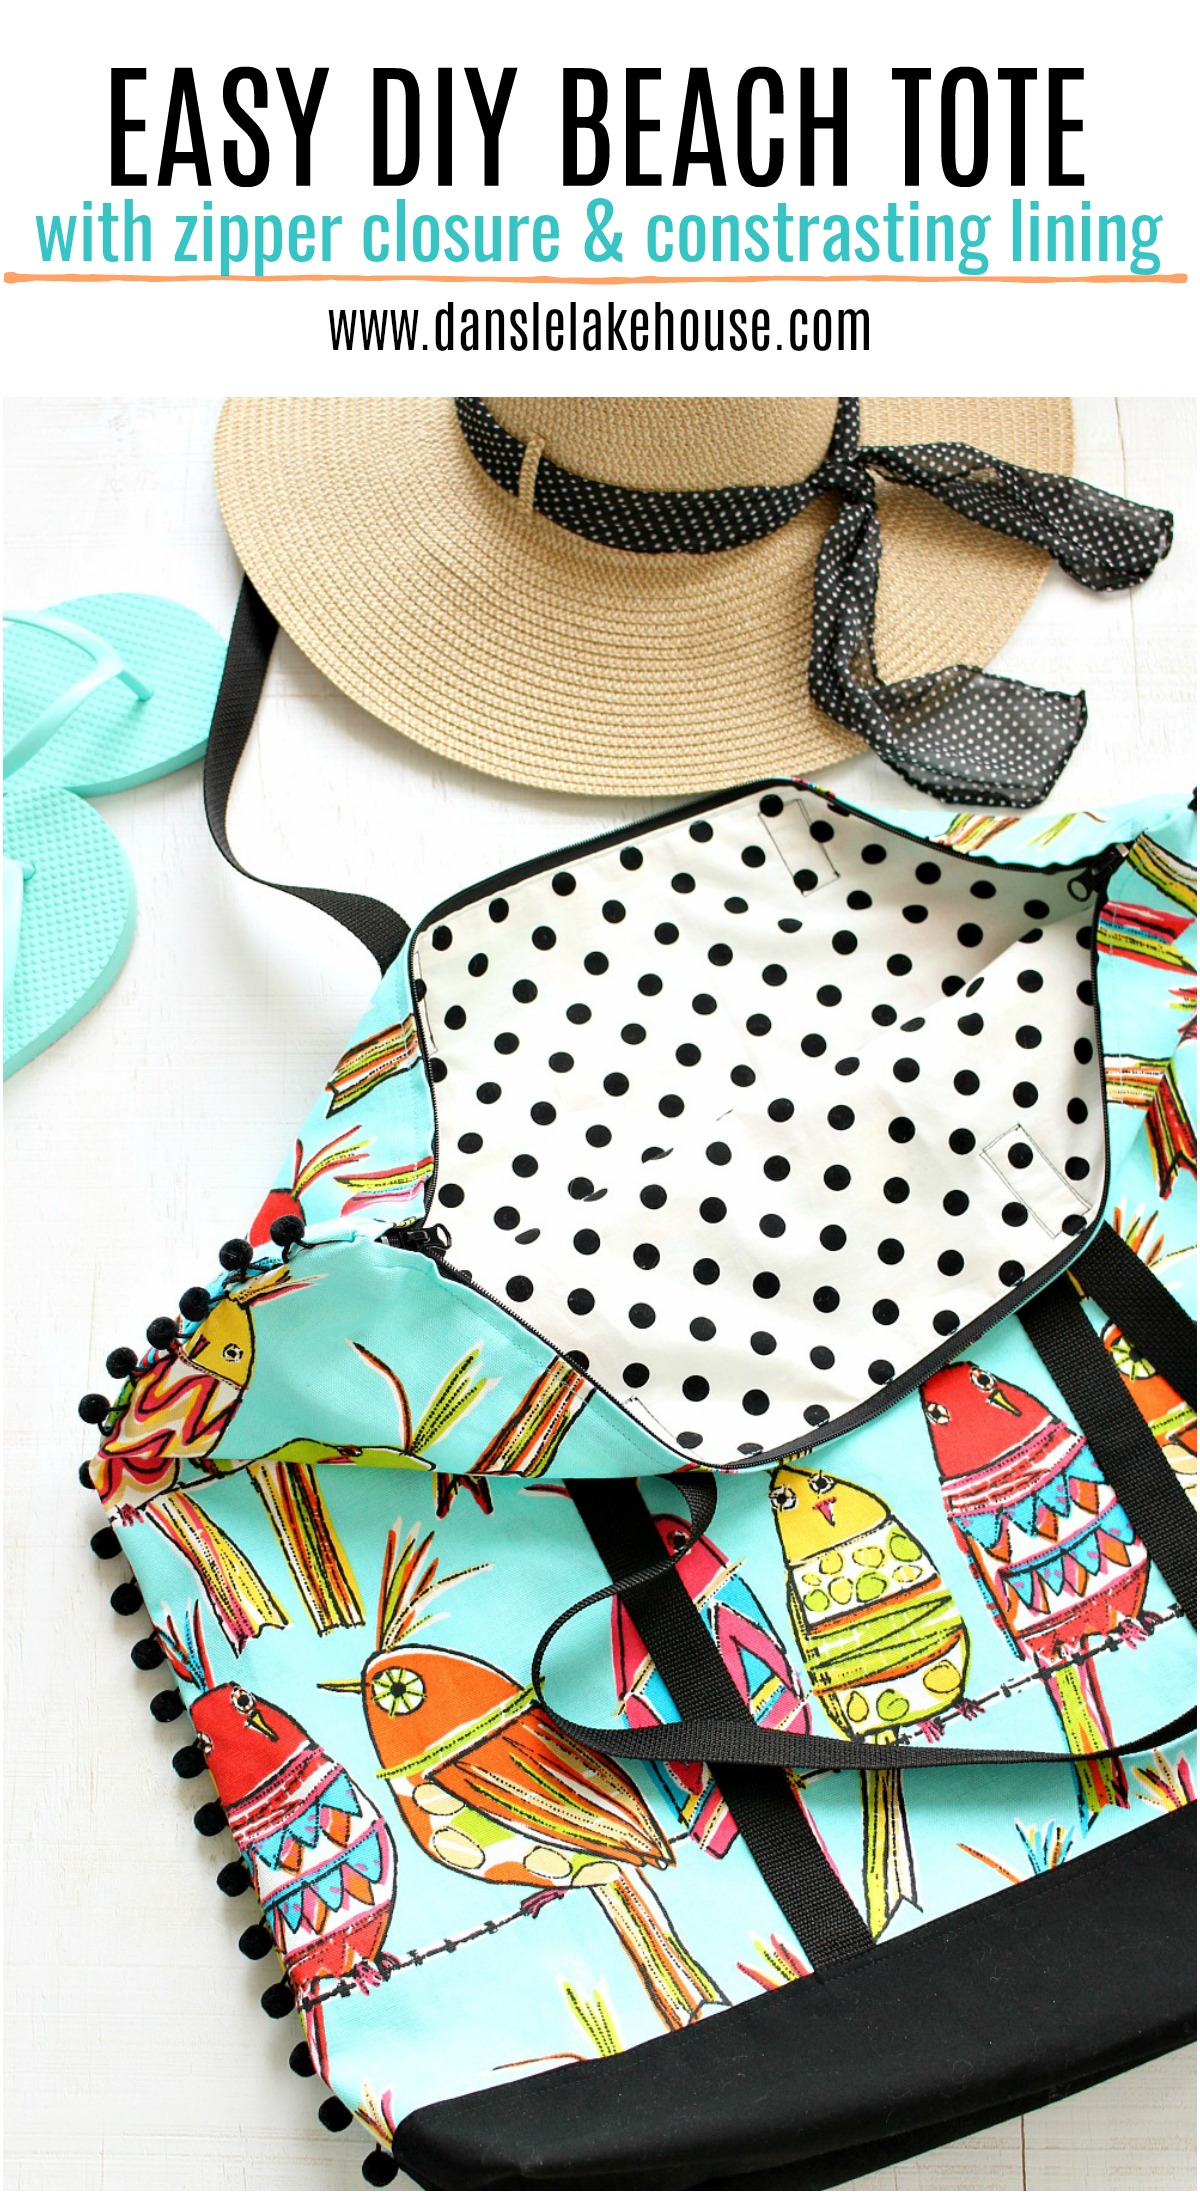 Easy DIY beach tote with zipper closure and contrasting lining